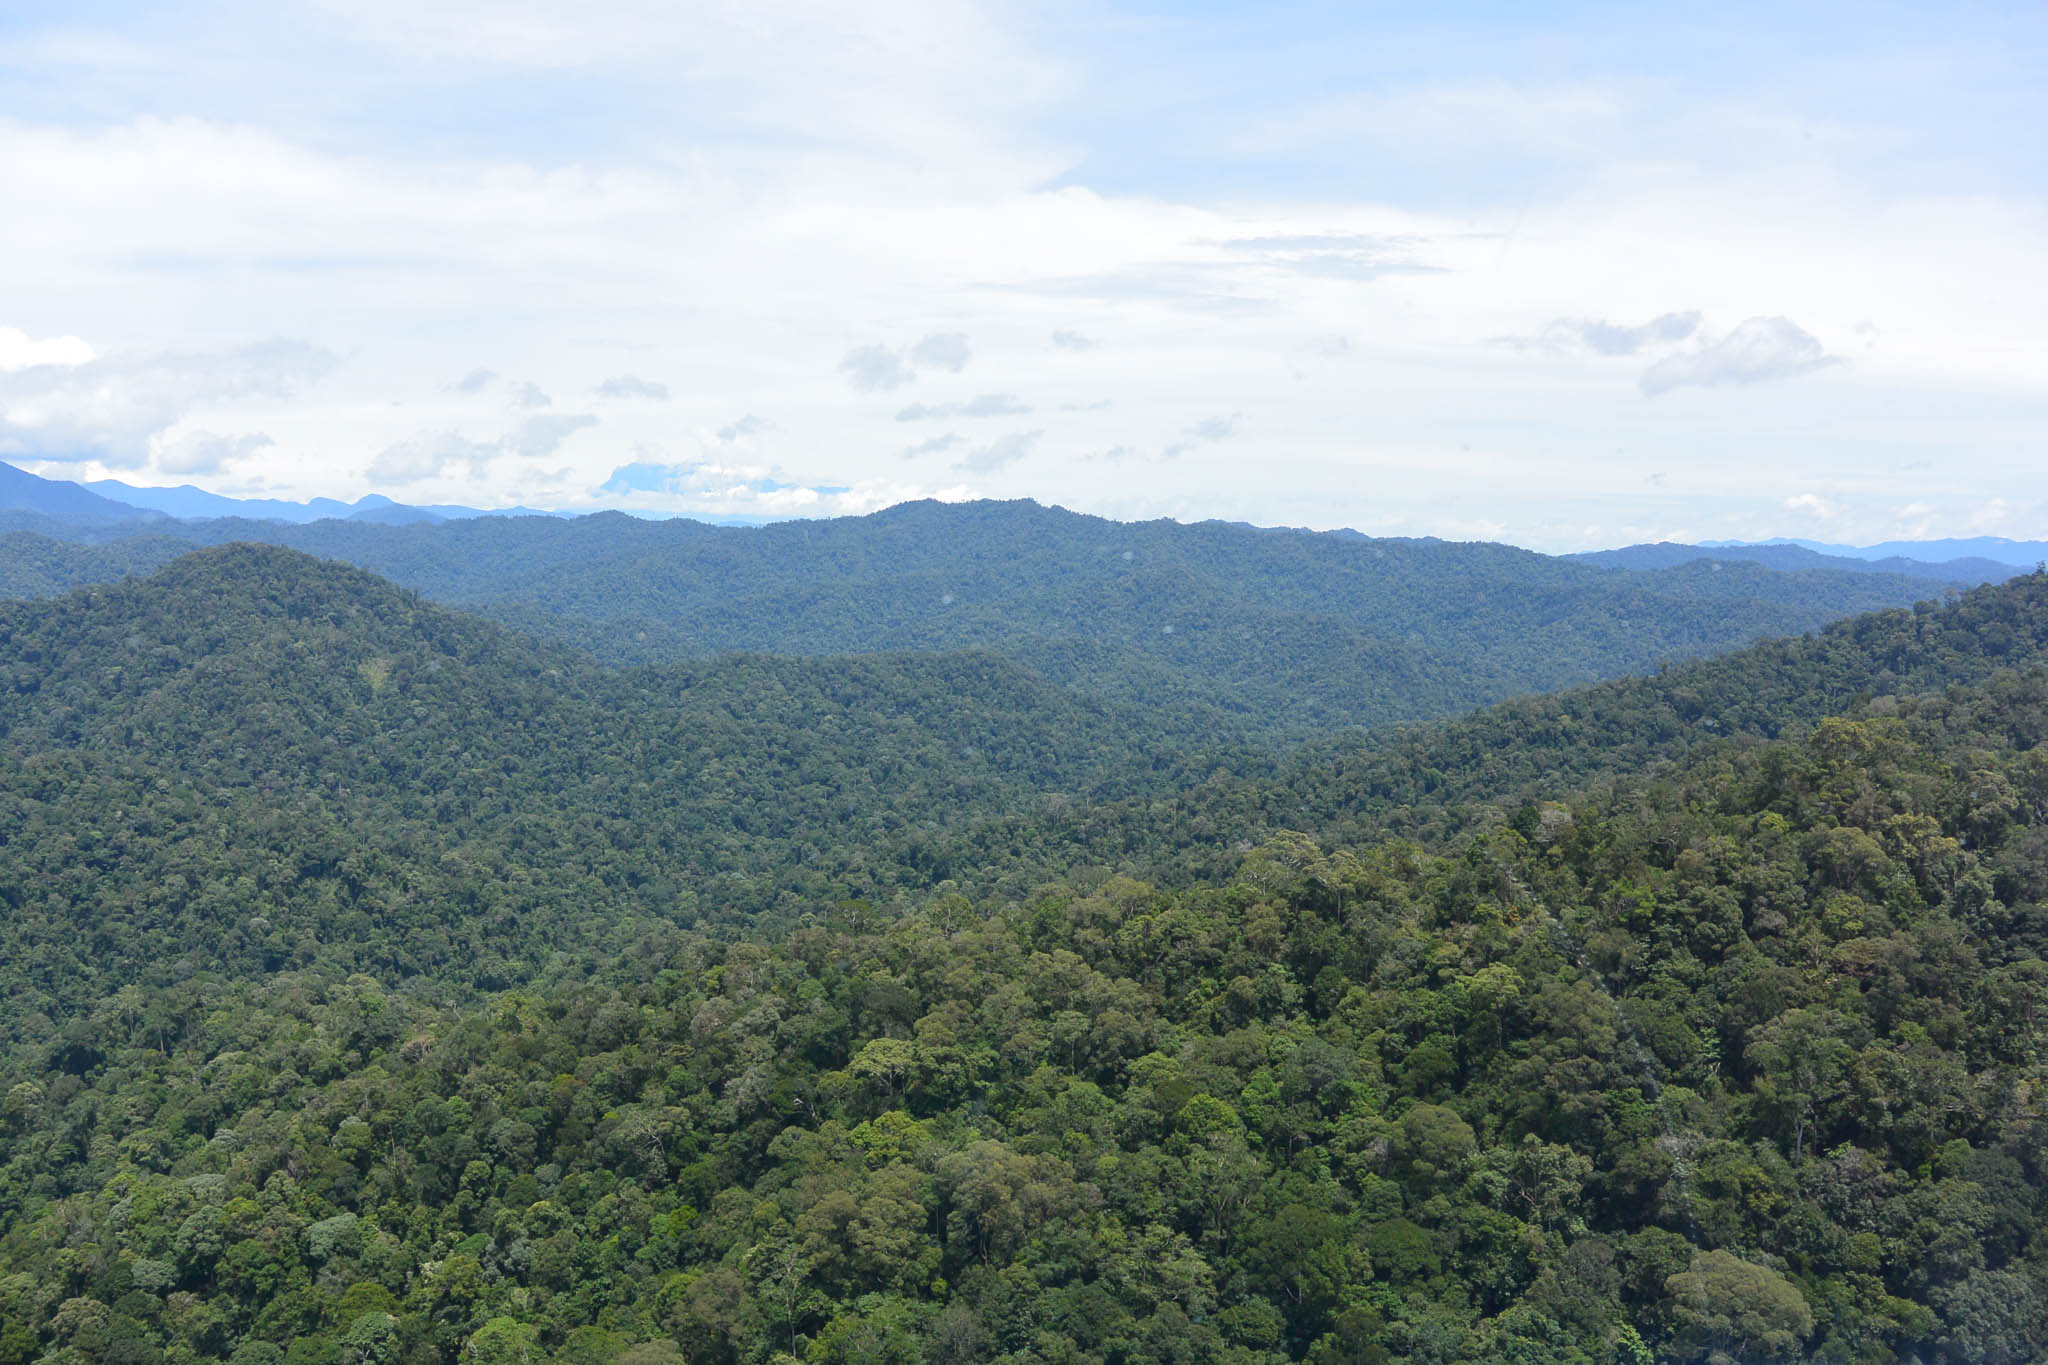 FMU5's terrain ranges from 150 to 2,300 meters above sea level. © WWF-Malaysia/STCP